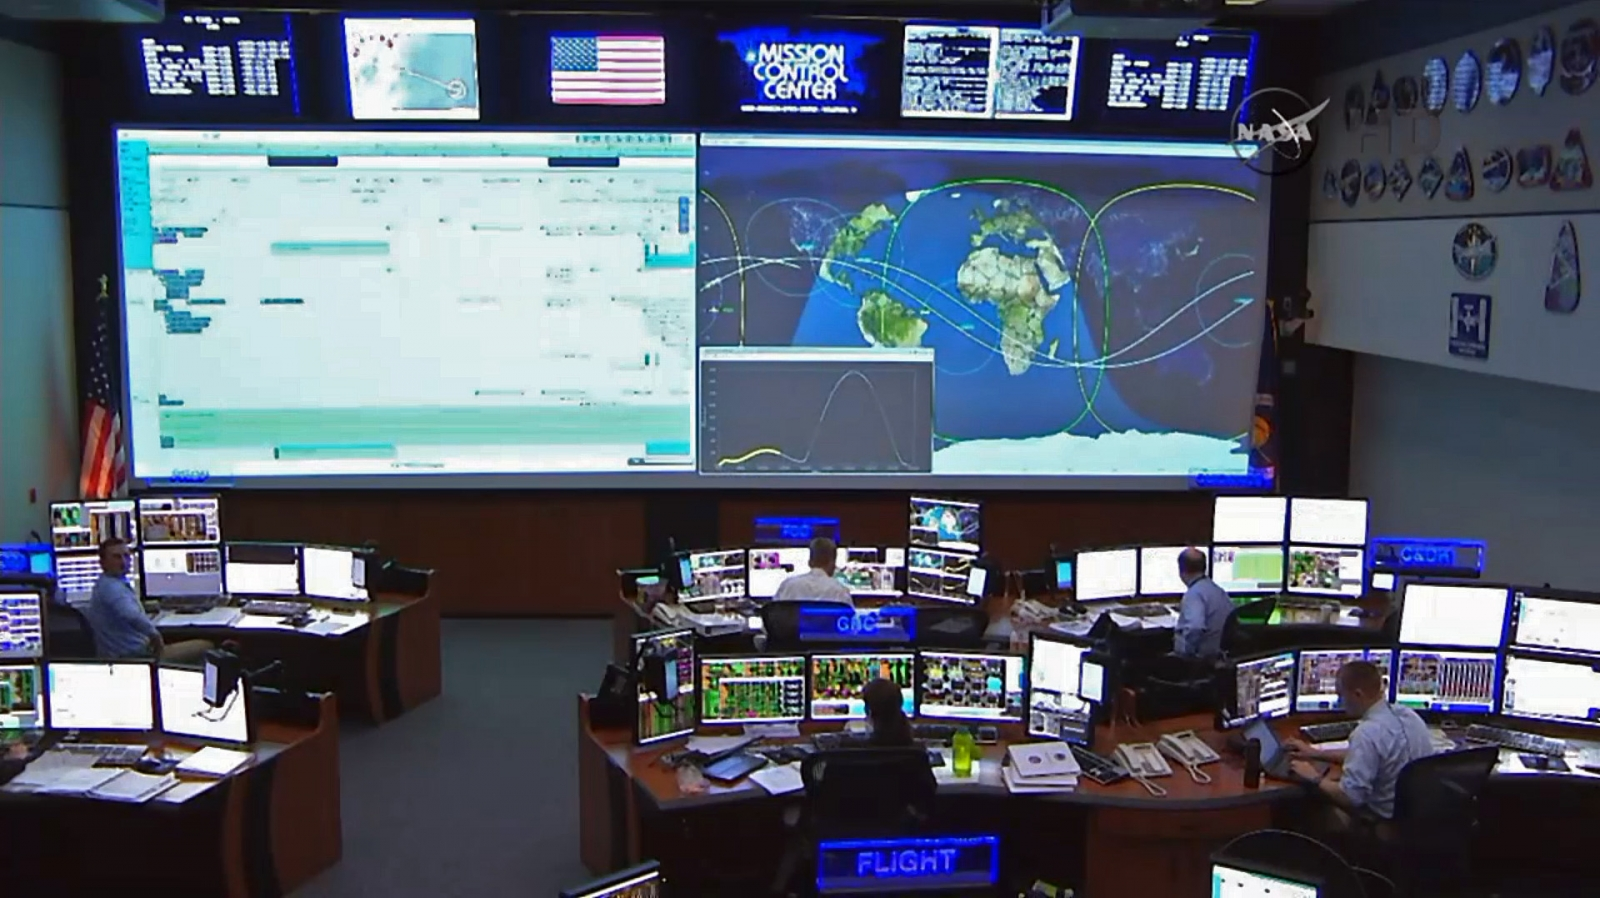 houston mission control center - photo #22